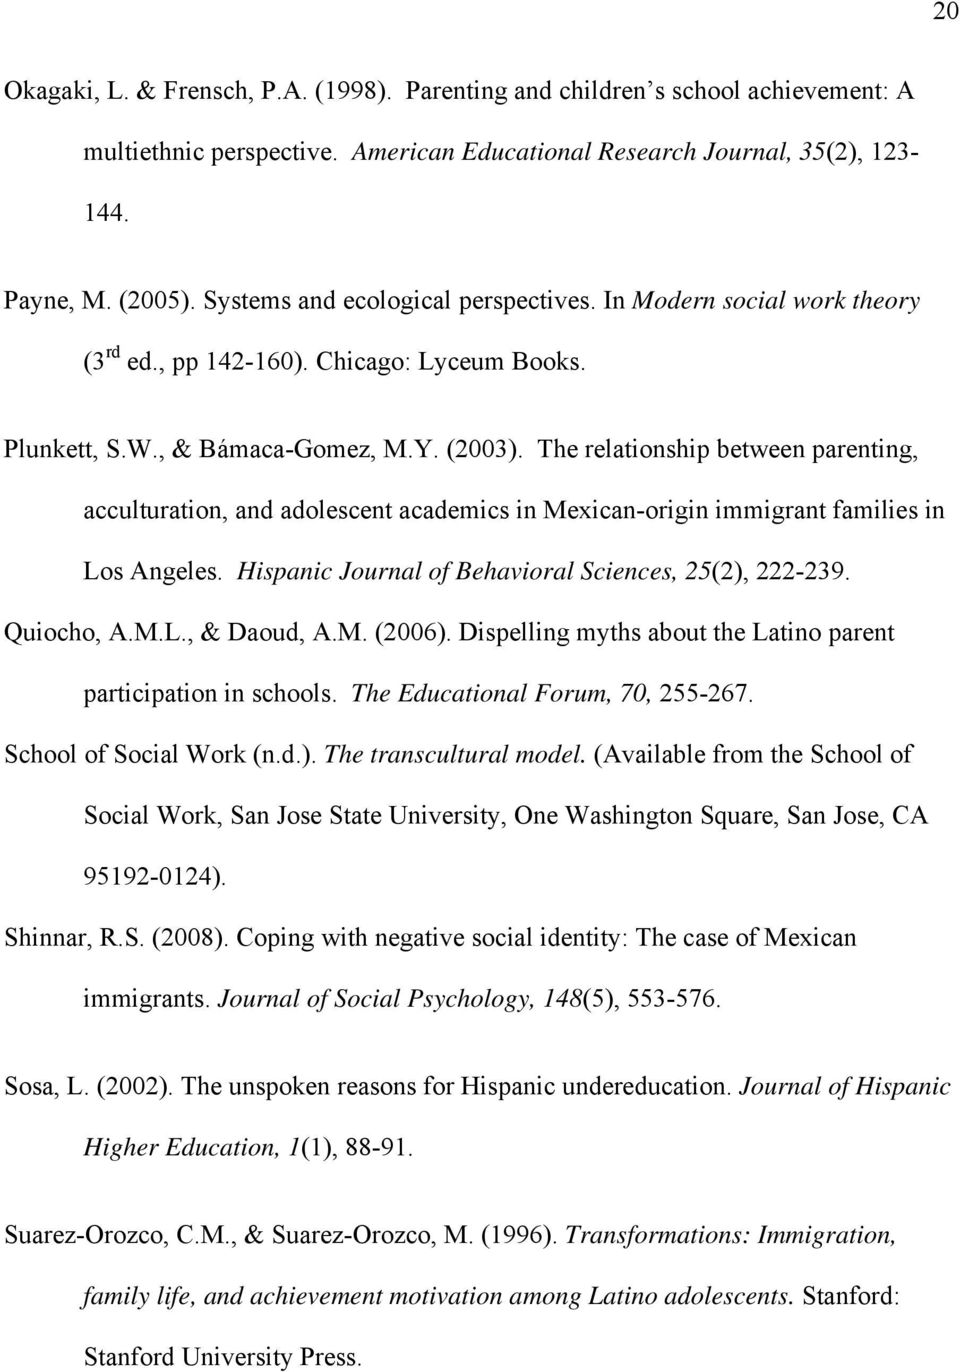 The relationship between parenting, acculturation, and adolescent academics in Mexican-origin immigrant families in Los Angeles. Hispanic Journal of Behavioral Sciences, 25(2), 222-239. Quiocho, A.M.L., & Daoud, A.